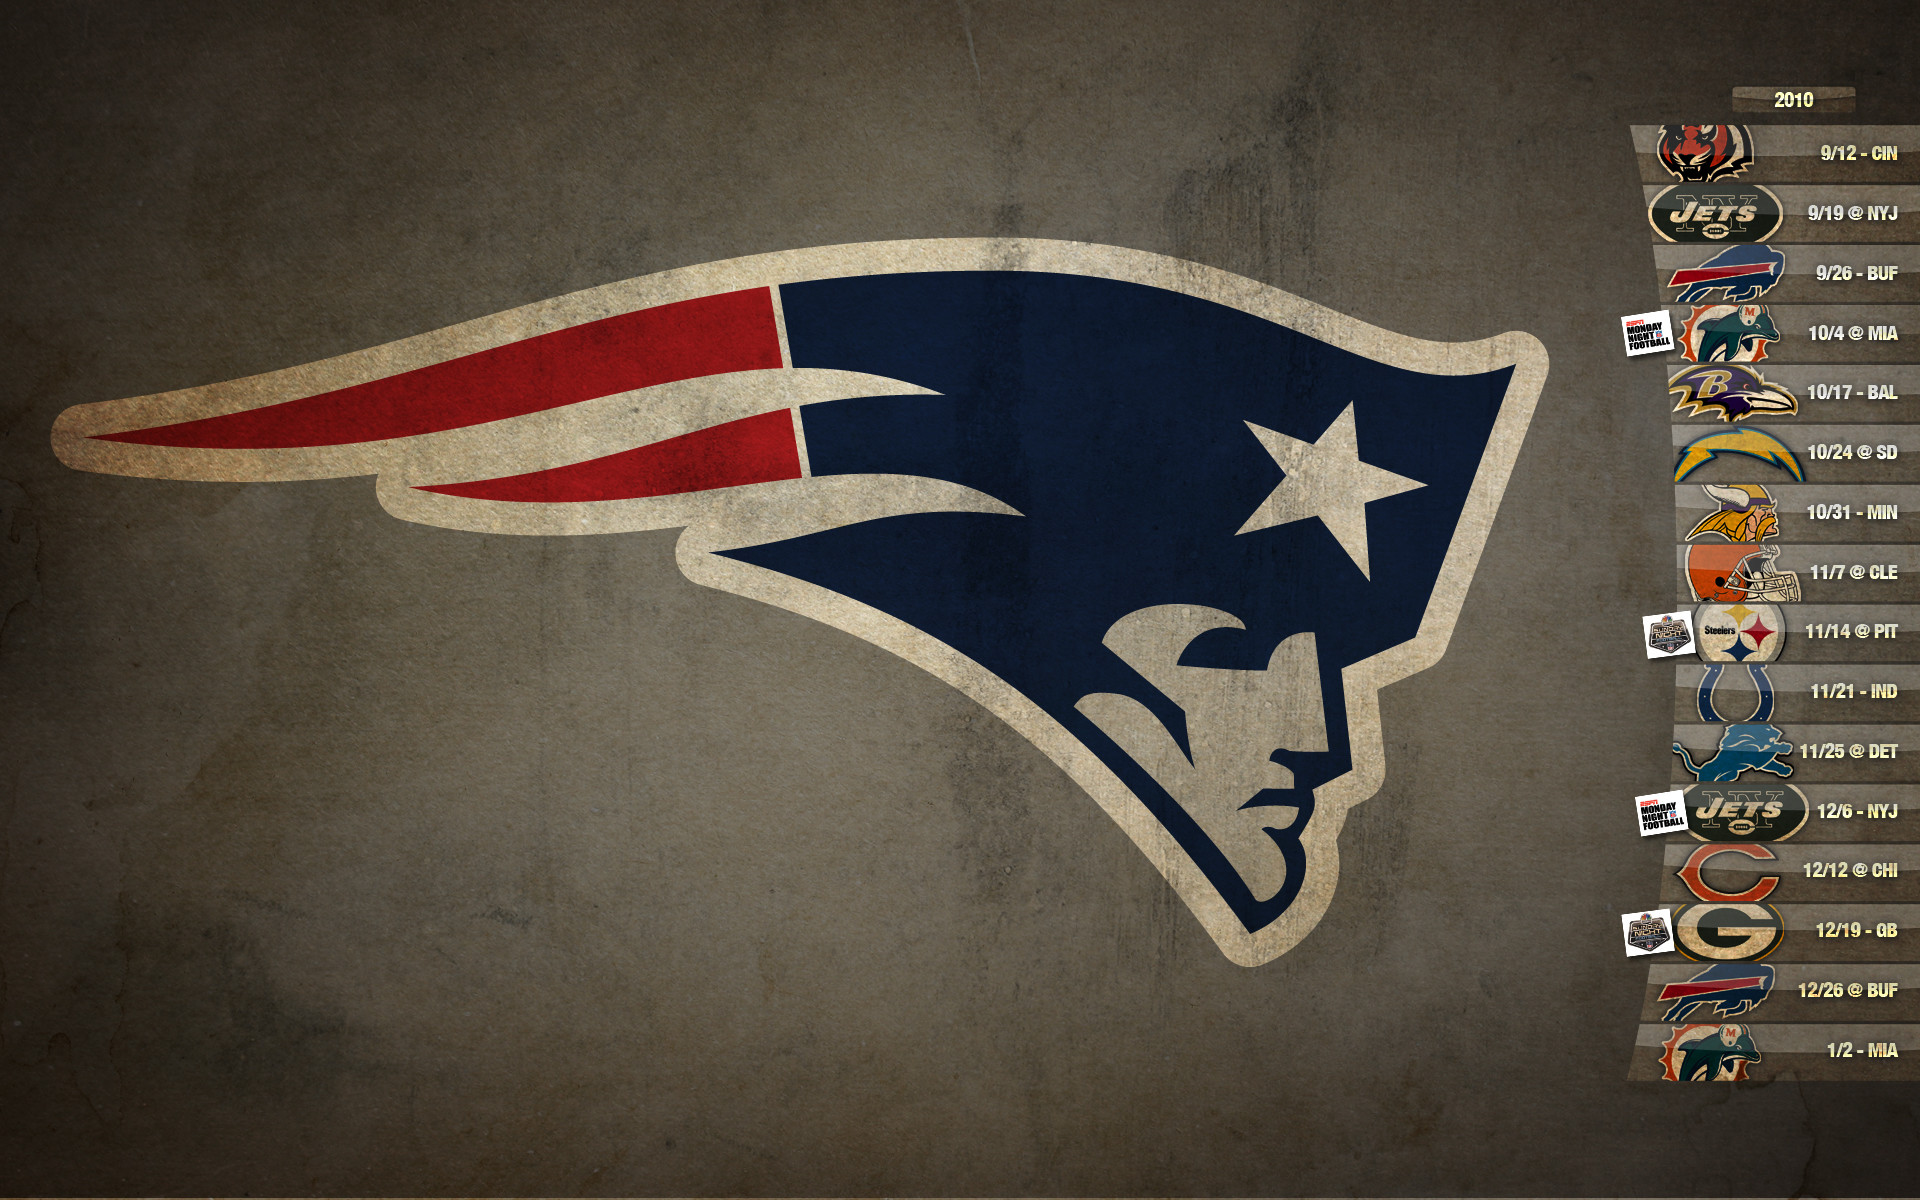 1920x1200 New England Patriots Schedule HD Desktop Wallpaper | HD Desktop